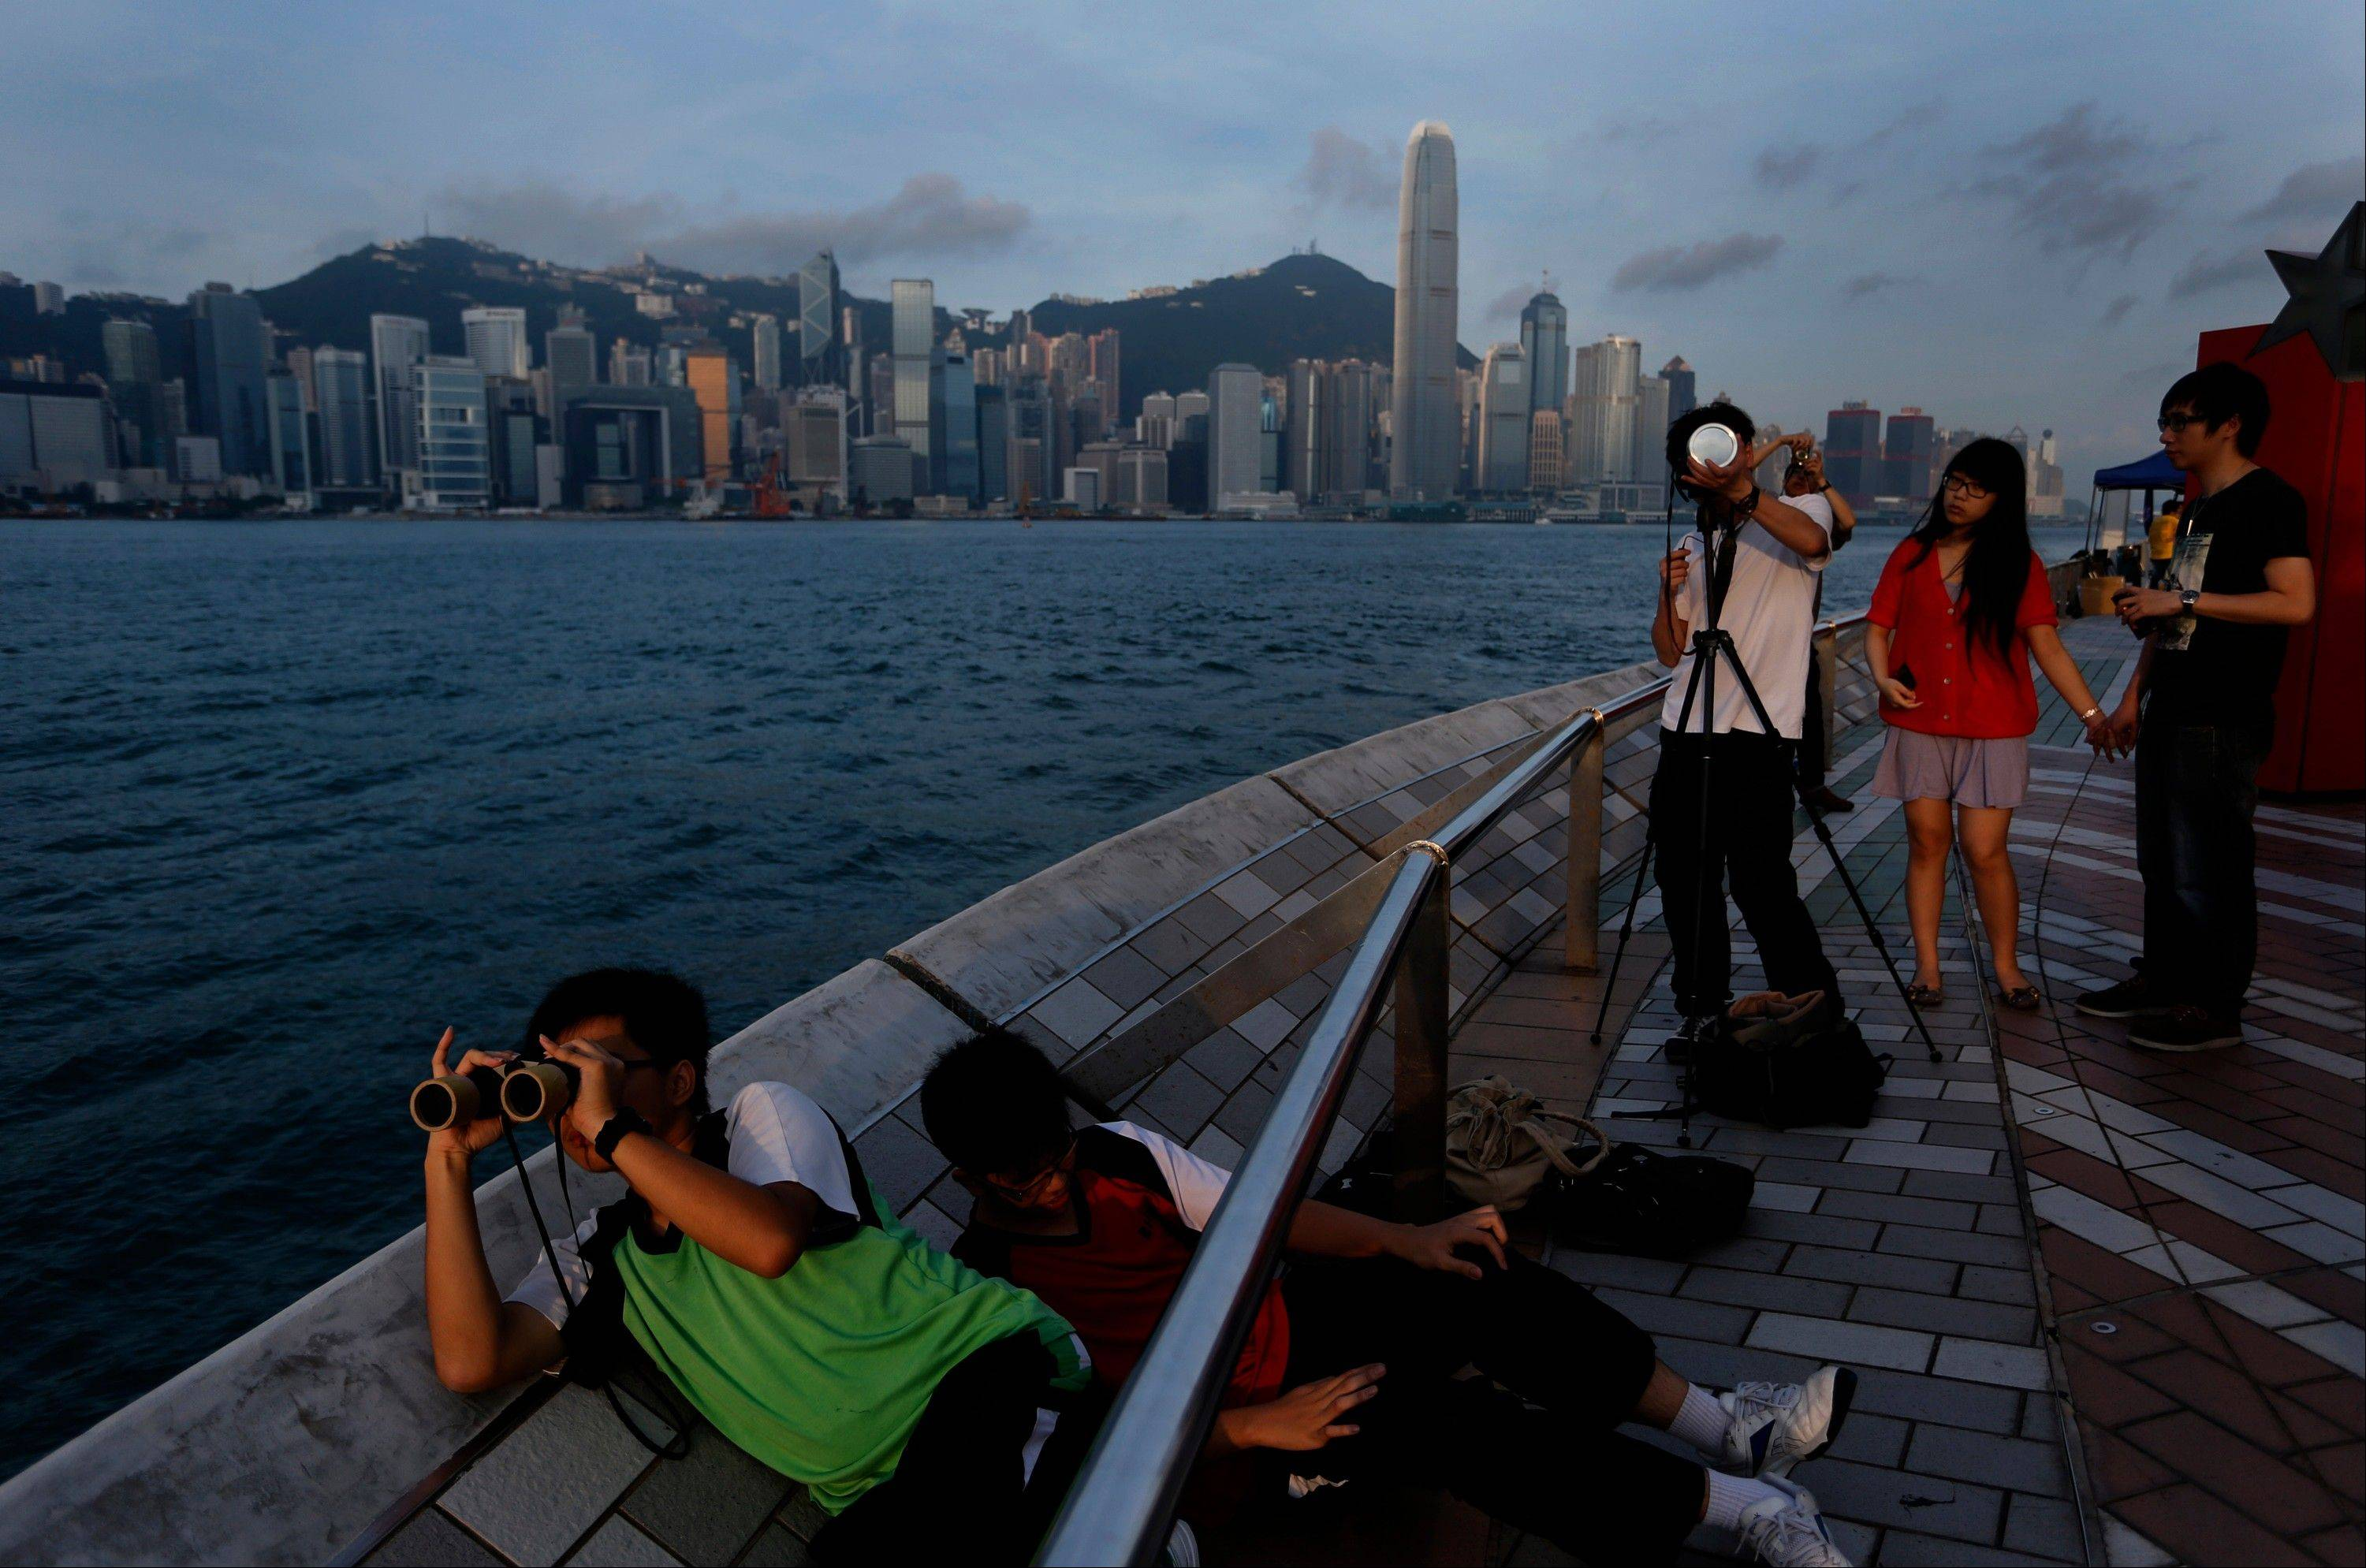 Hong Kong stargazer use special filers on telescope to observe the transit of Venus along the Victoria Habour in Hong Kong Wednesday, June 6, 2012. Stargazers around the world are setting up special telescopes and passing out cardboard eclipse glasses to view the once-in-a-lifetime celestial cameo of Venus passing in front of the sun.